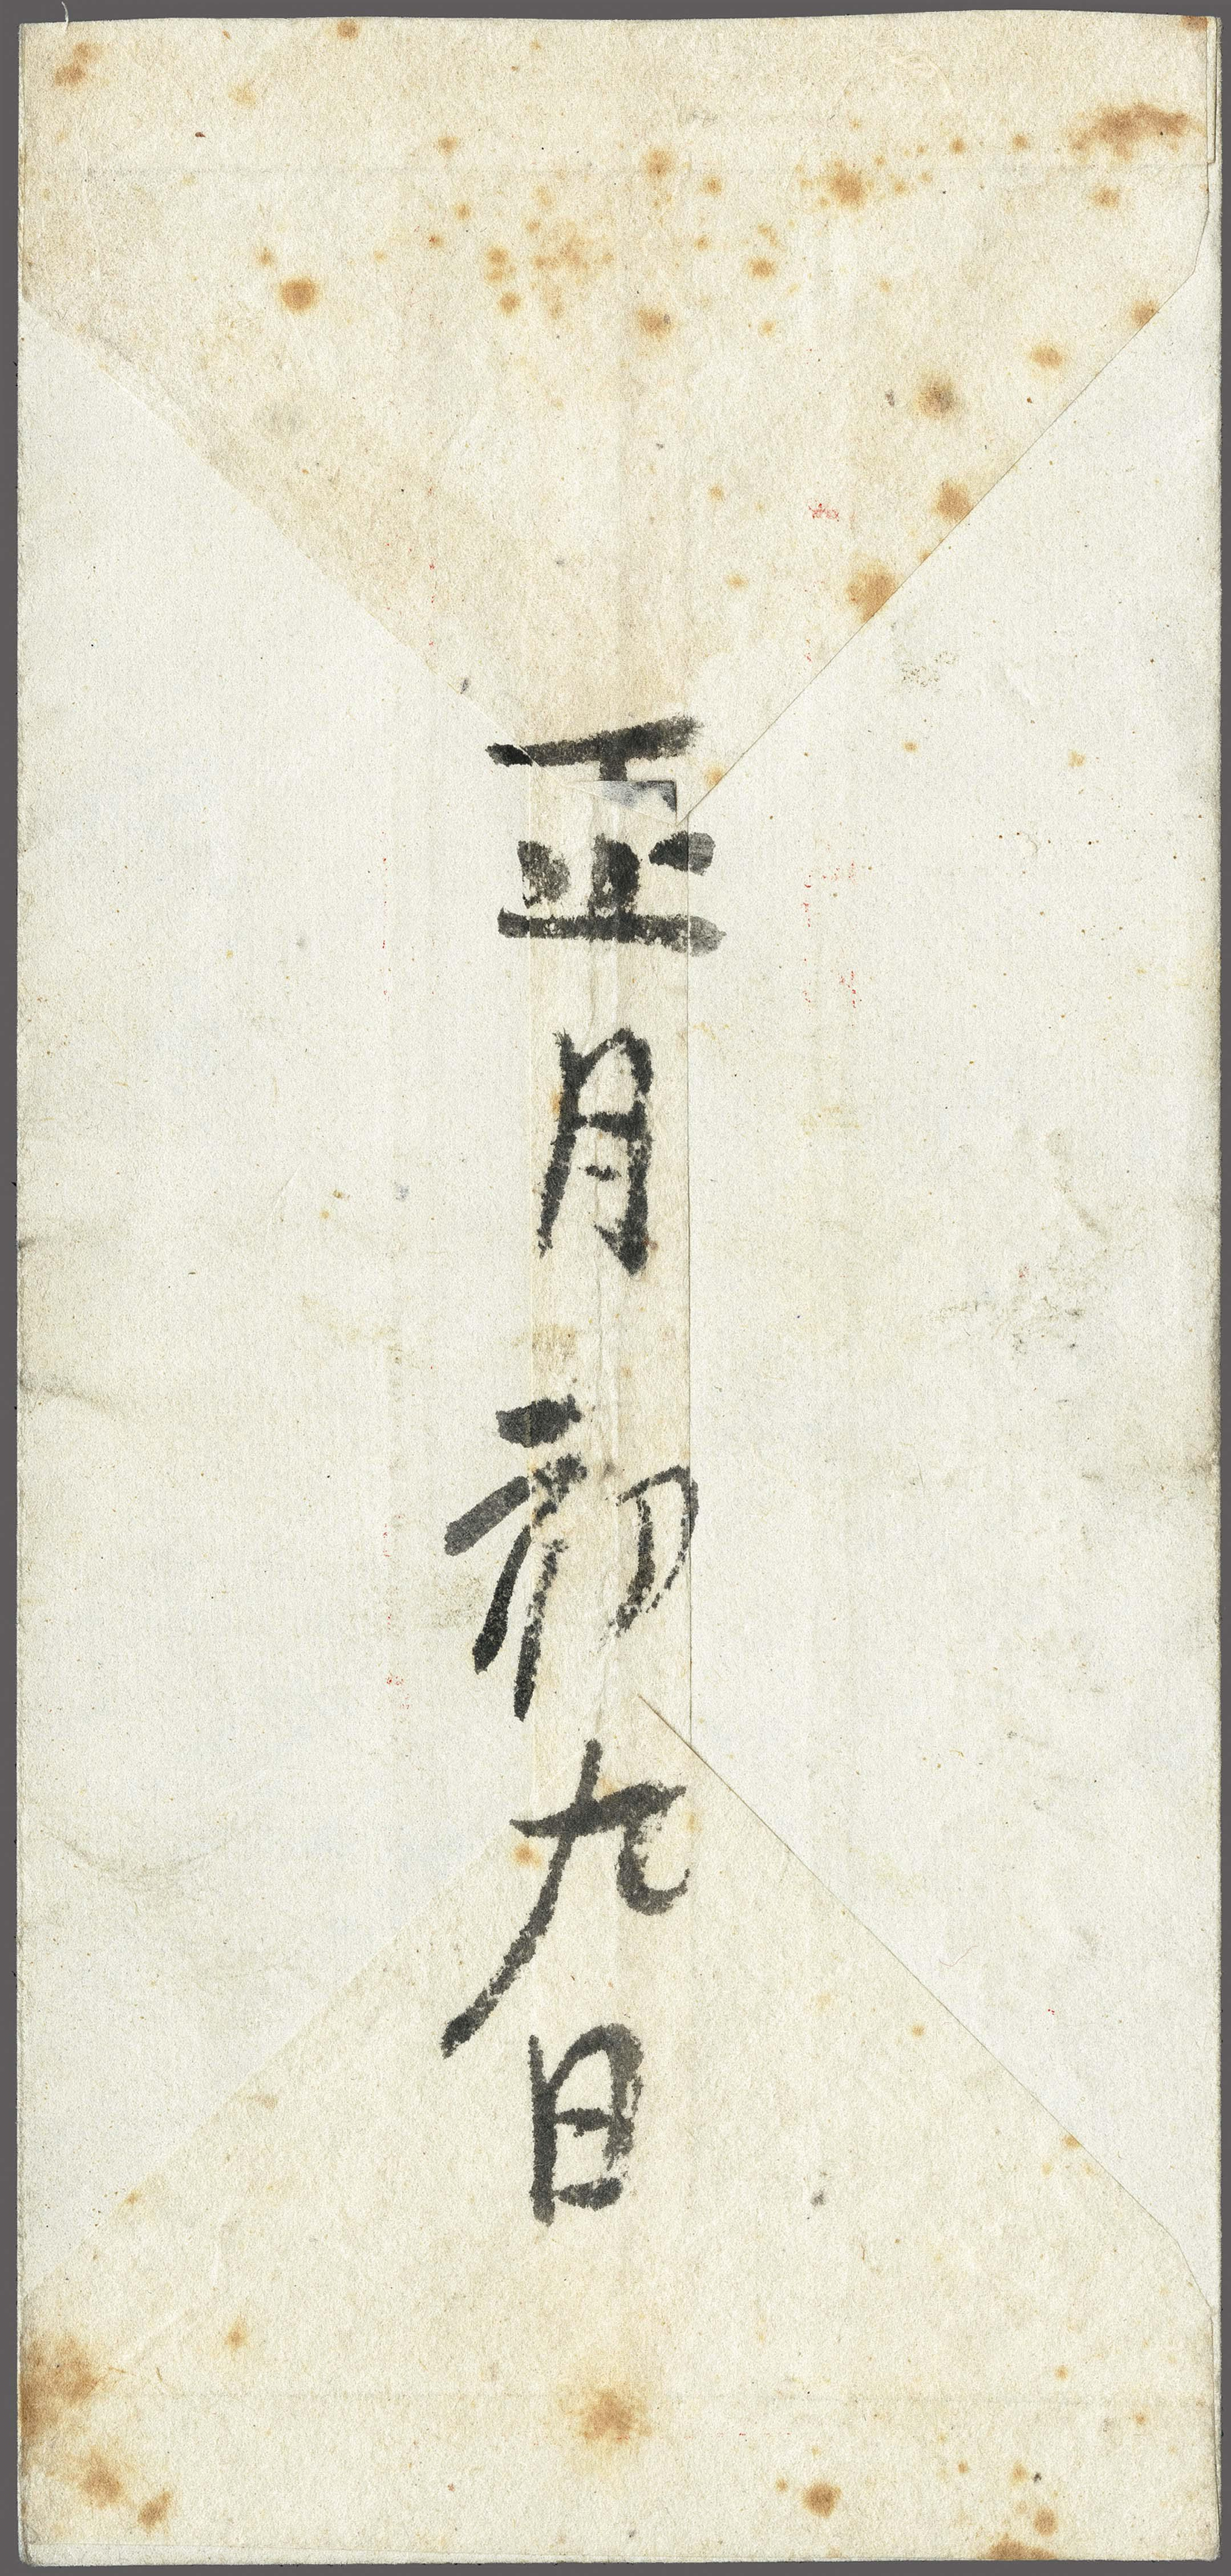 Lot 61 - China China Northern Provinces -  Corinphila Veilingen Auction 250-253 - Day 1 - Foreign countries